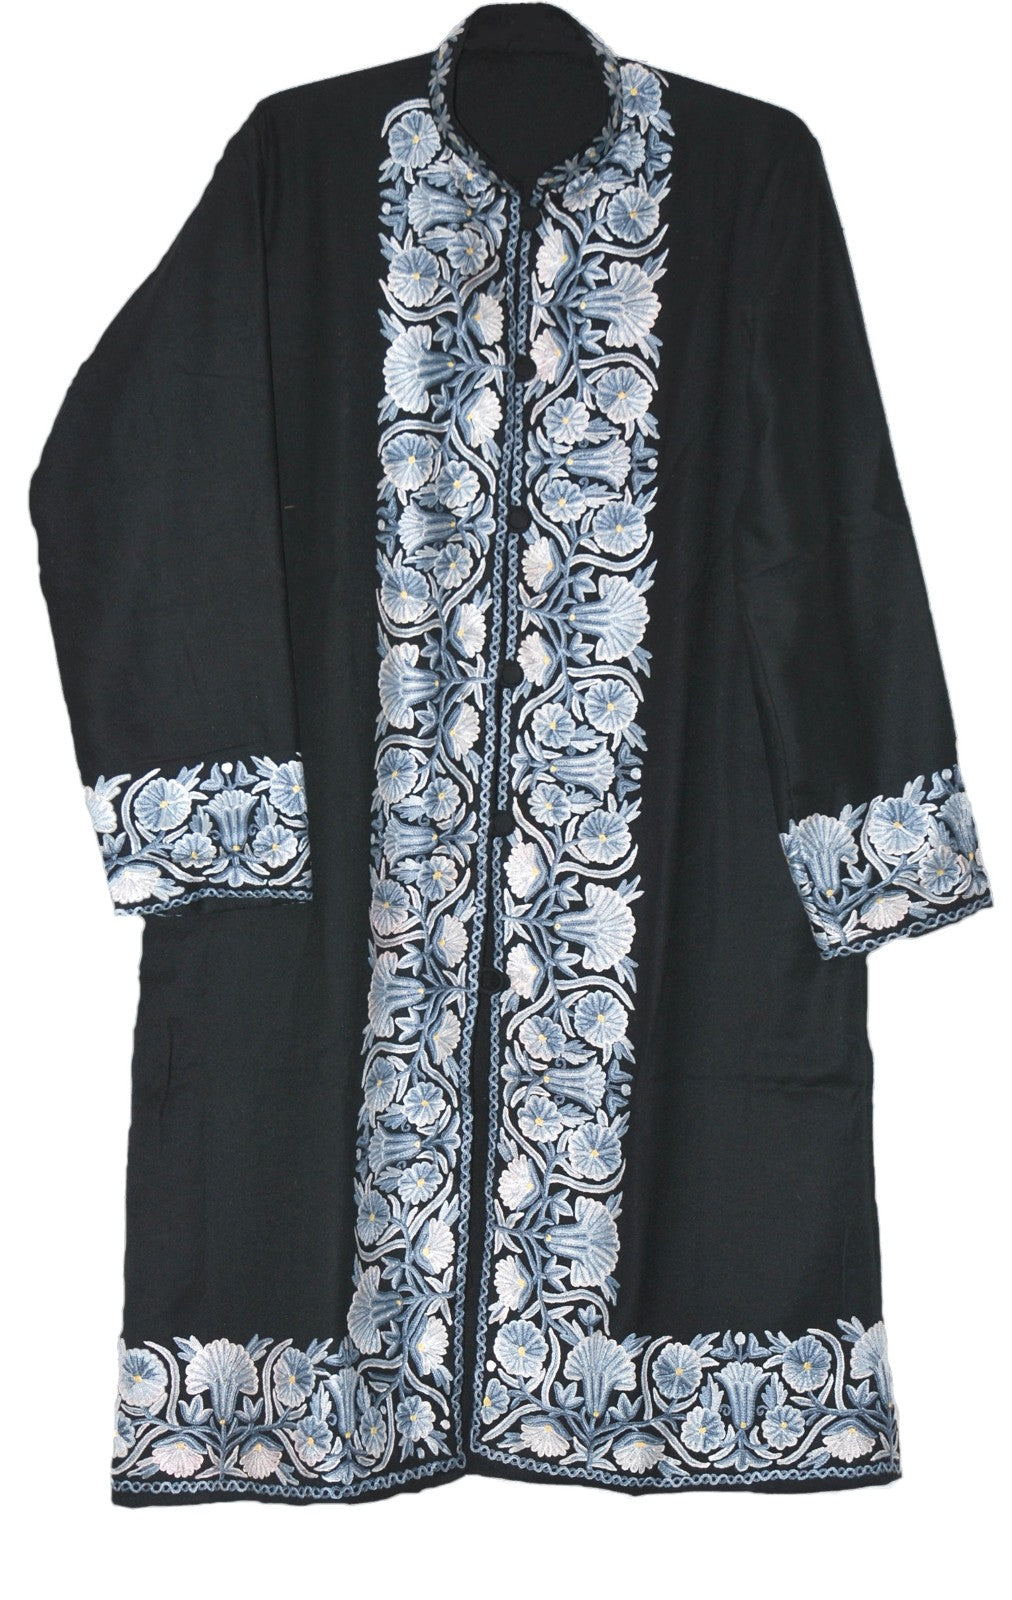 Embroidered Woolen Coat Black, Grey and White Embroidery #BD-124